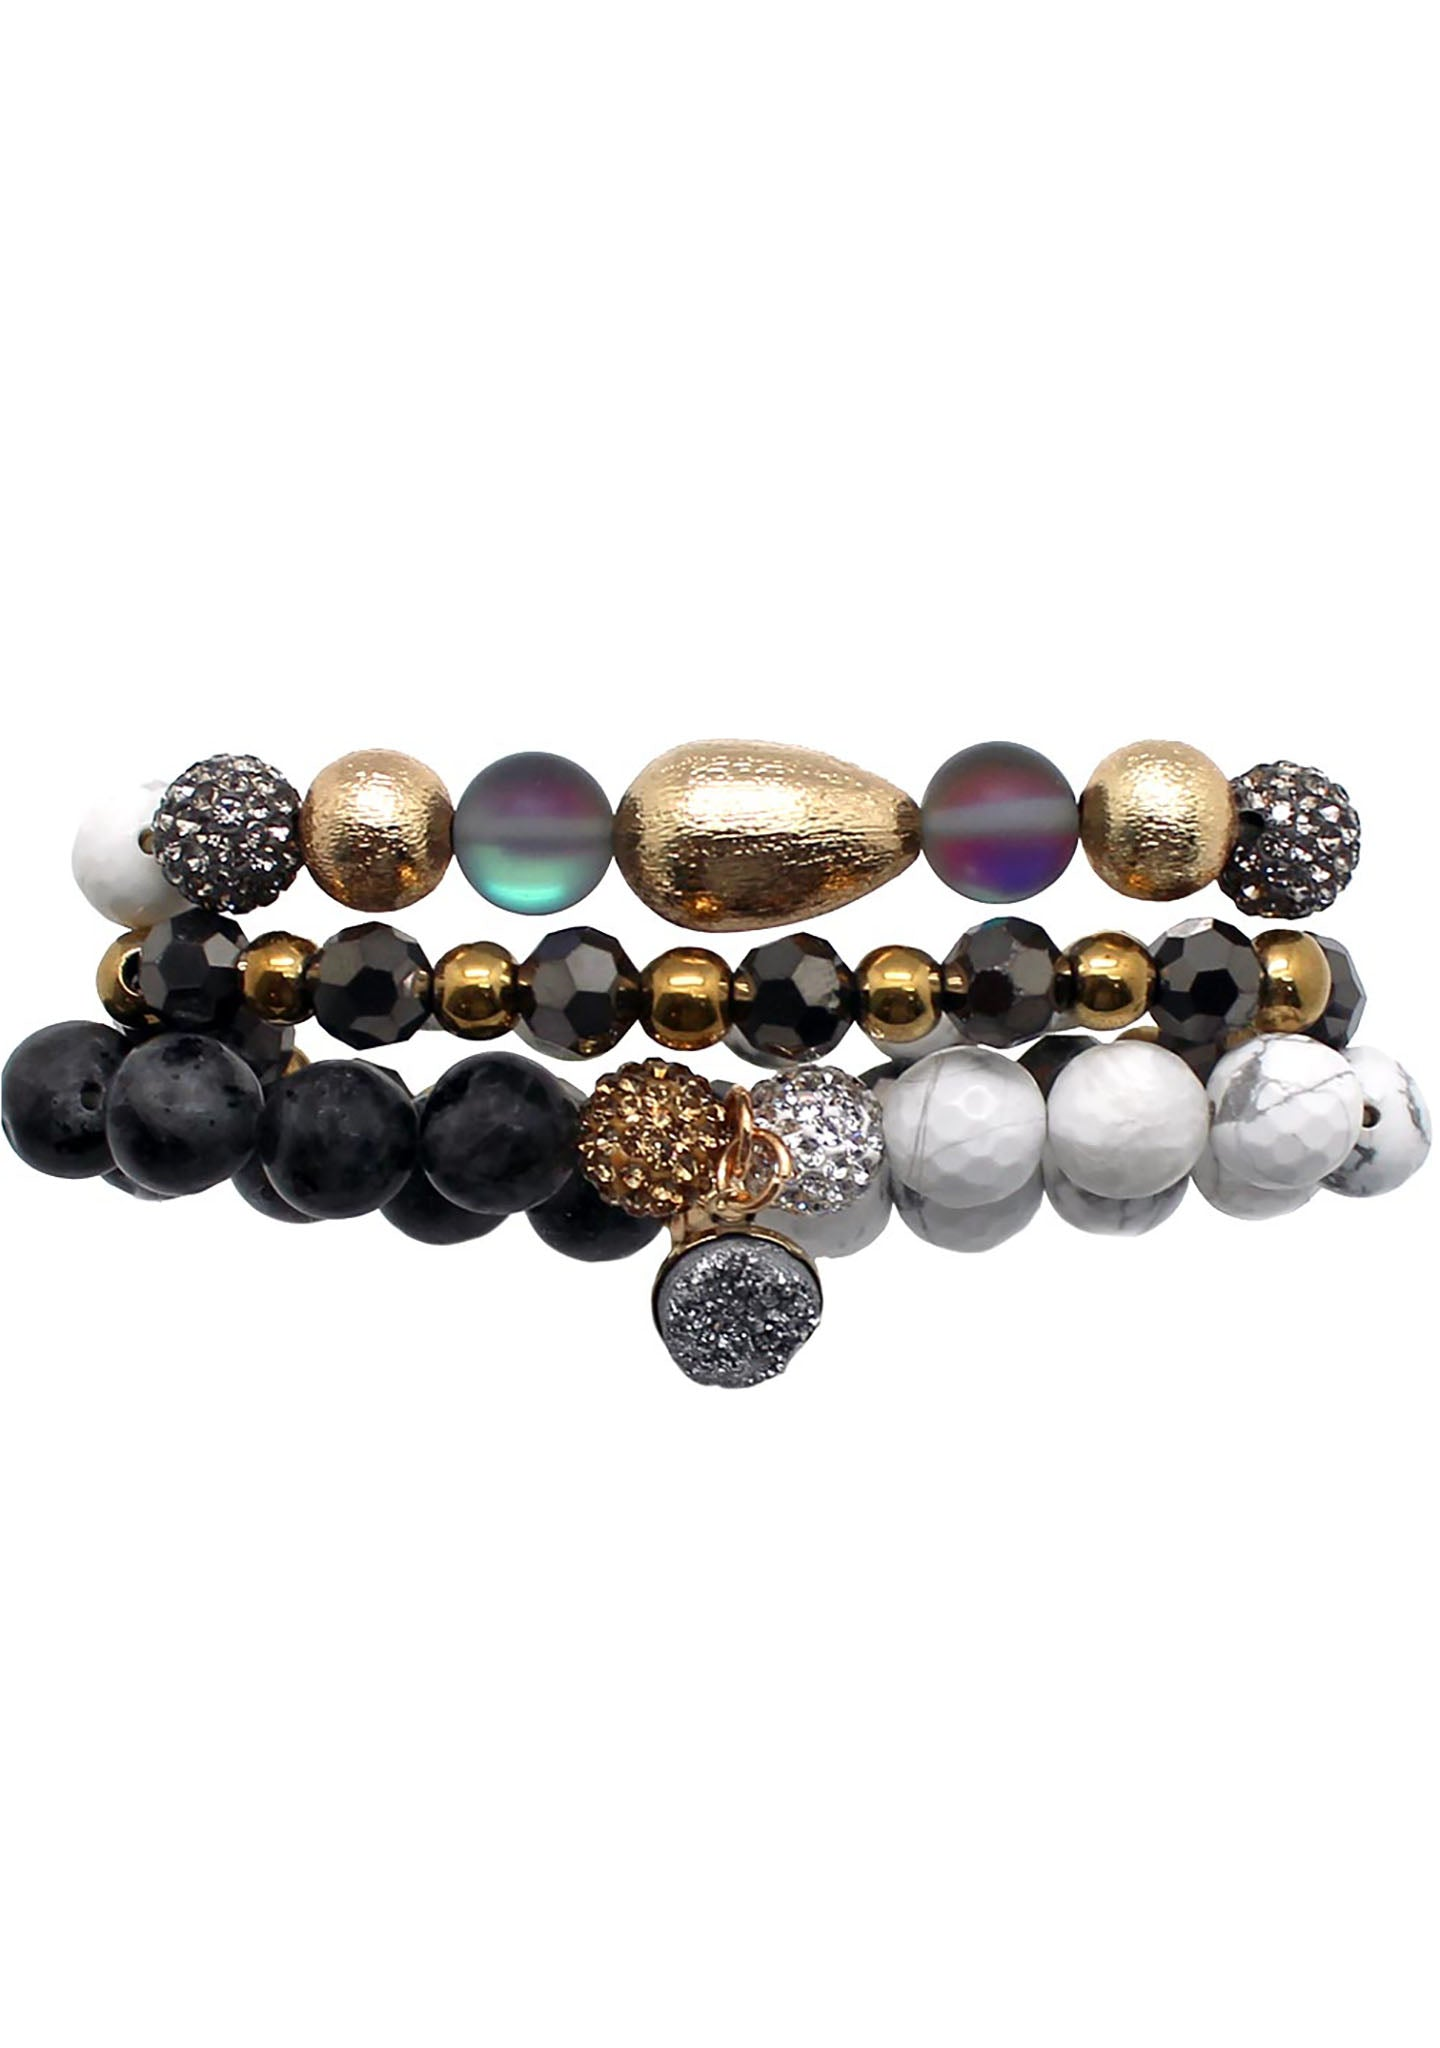 cookie b gold kookii fortune aurelia products bracelet